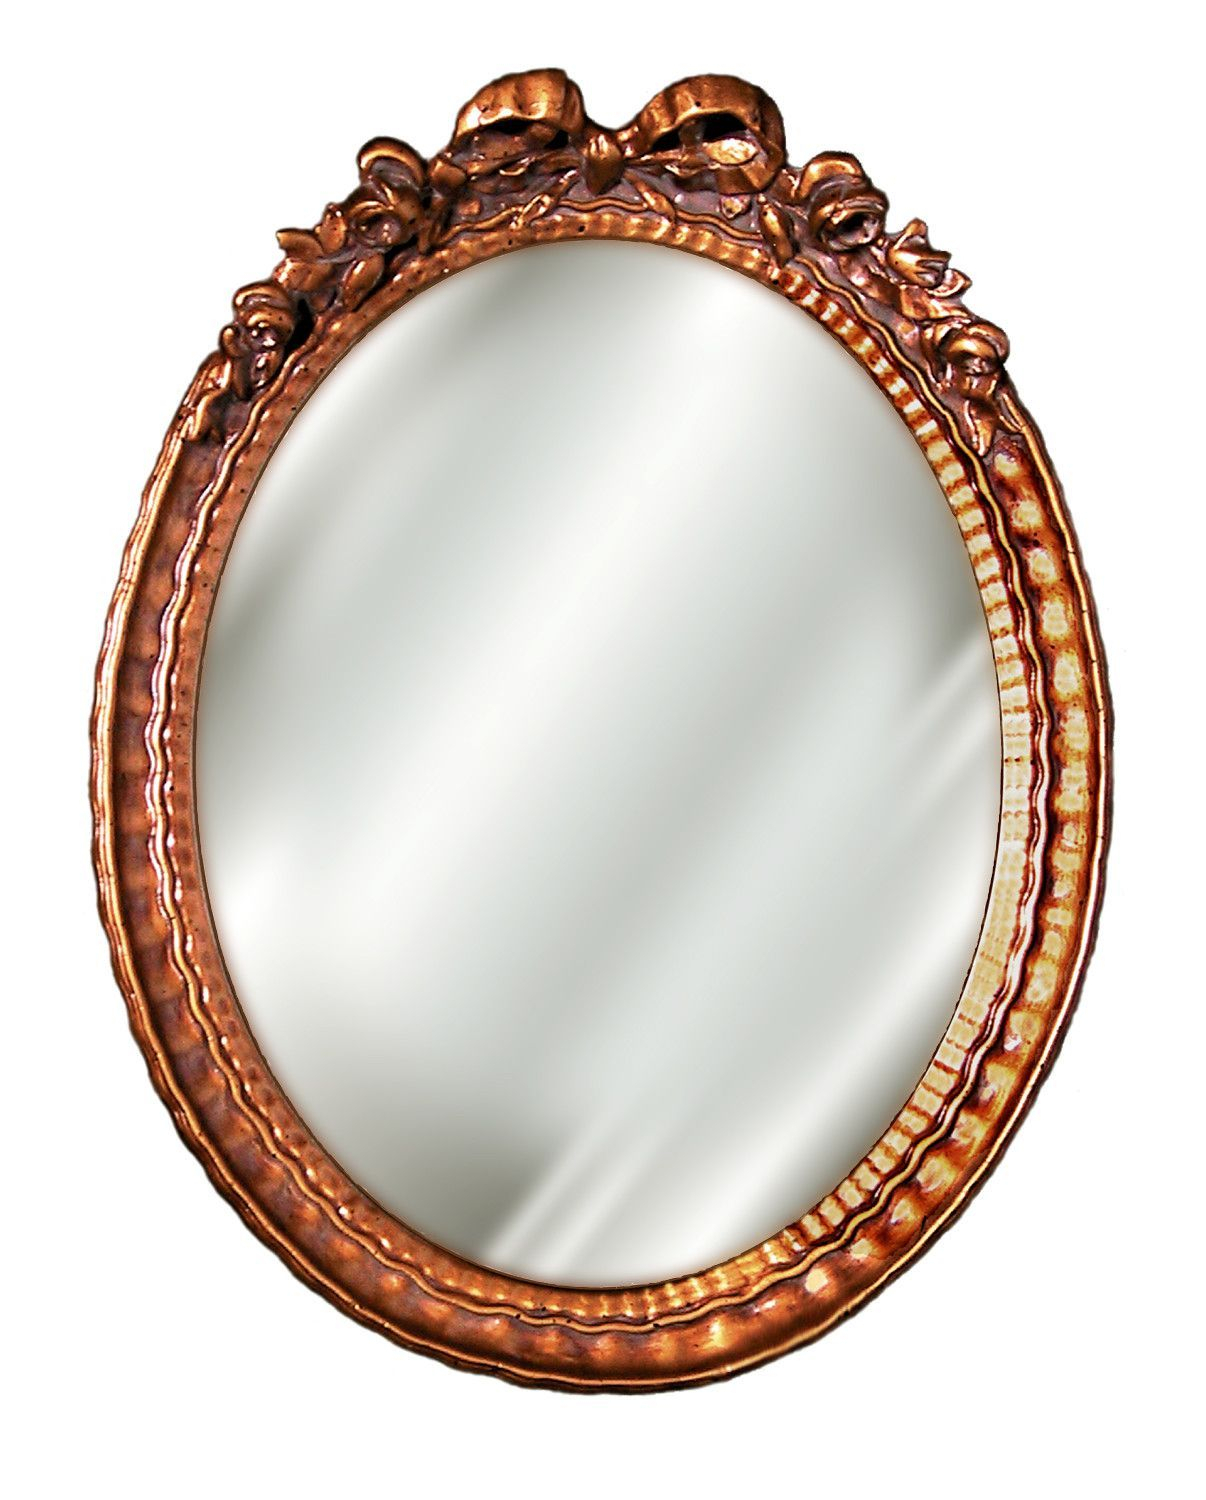 Accent Mirror | Products | Home Decor Mirrors, Mirror, Oval Within Bracelet Traditional Accent Mirrors (View 16 of 20)